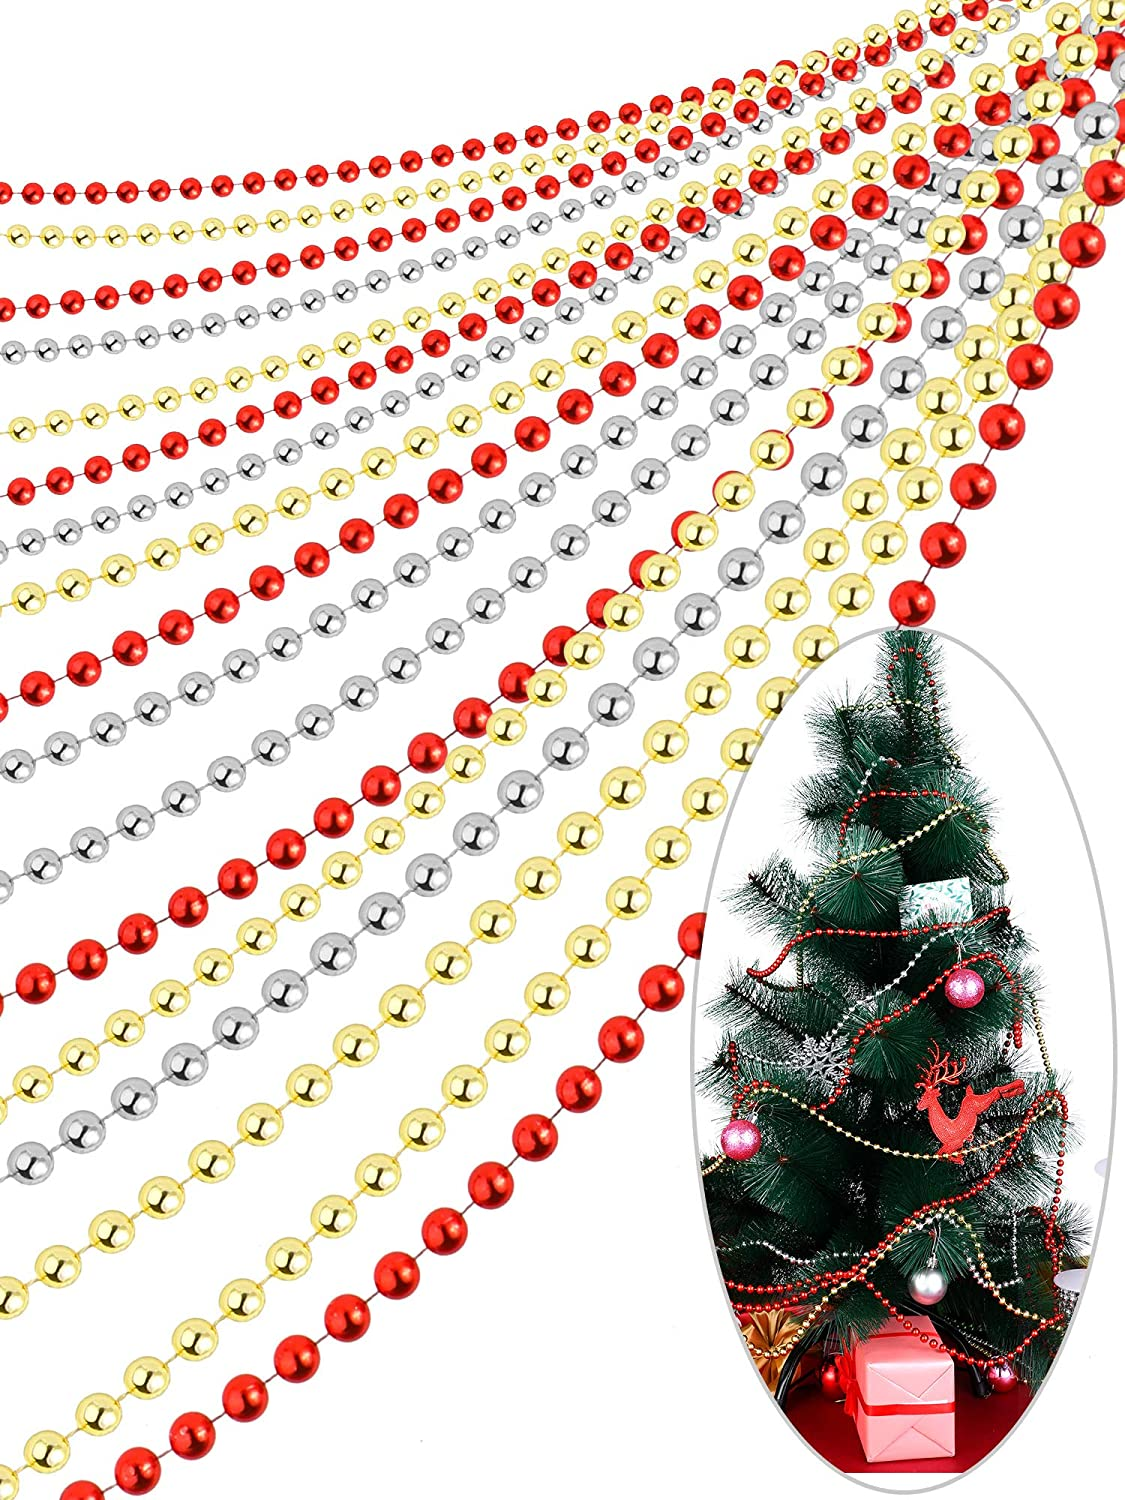 50 Feet Faux Pearls Beads Garland Chain Christmas Tree Beads Plastic Beaded Trim for Christmas Wedding Supplies 3 Colors